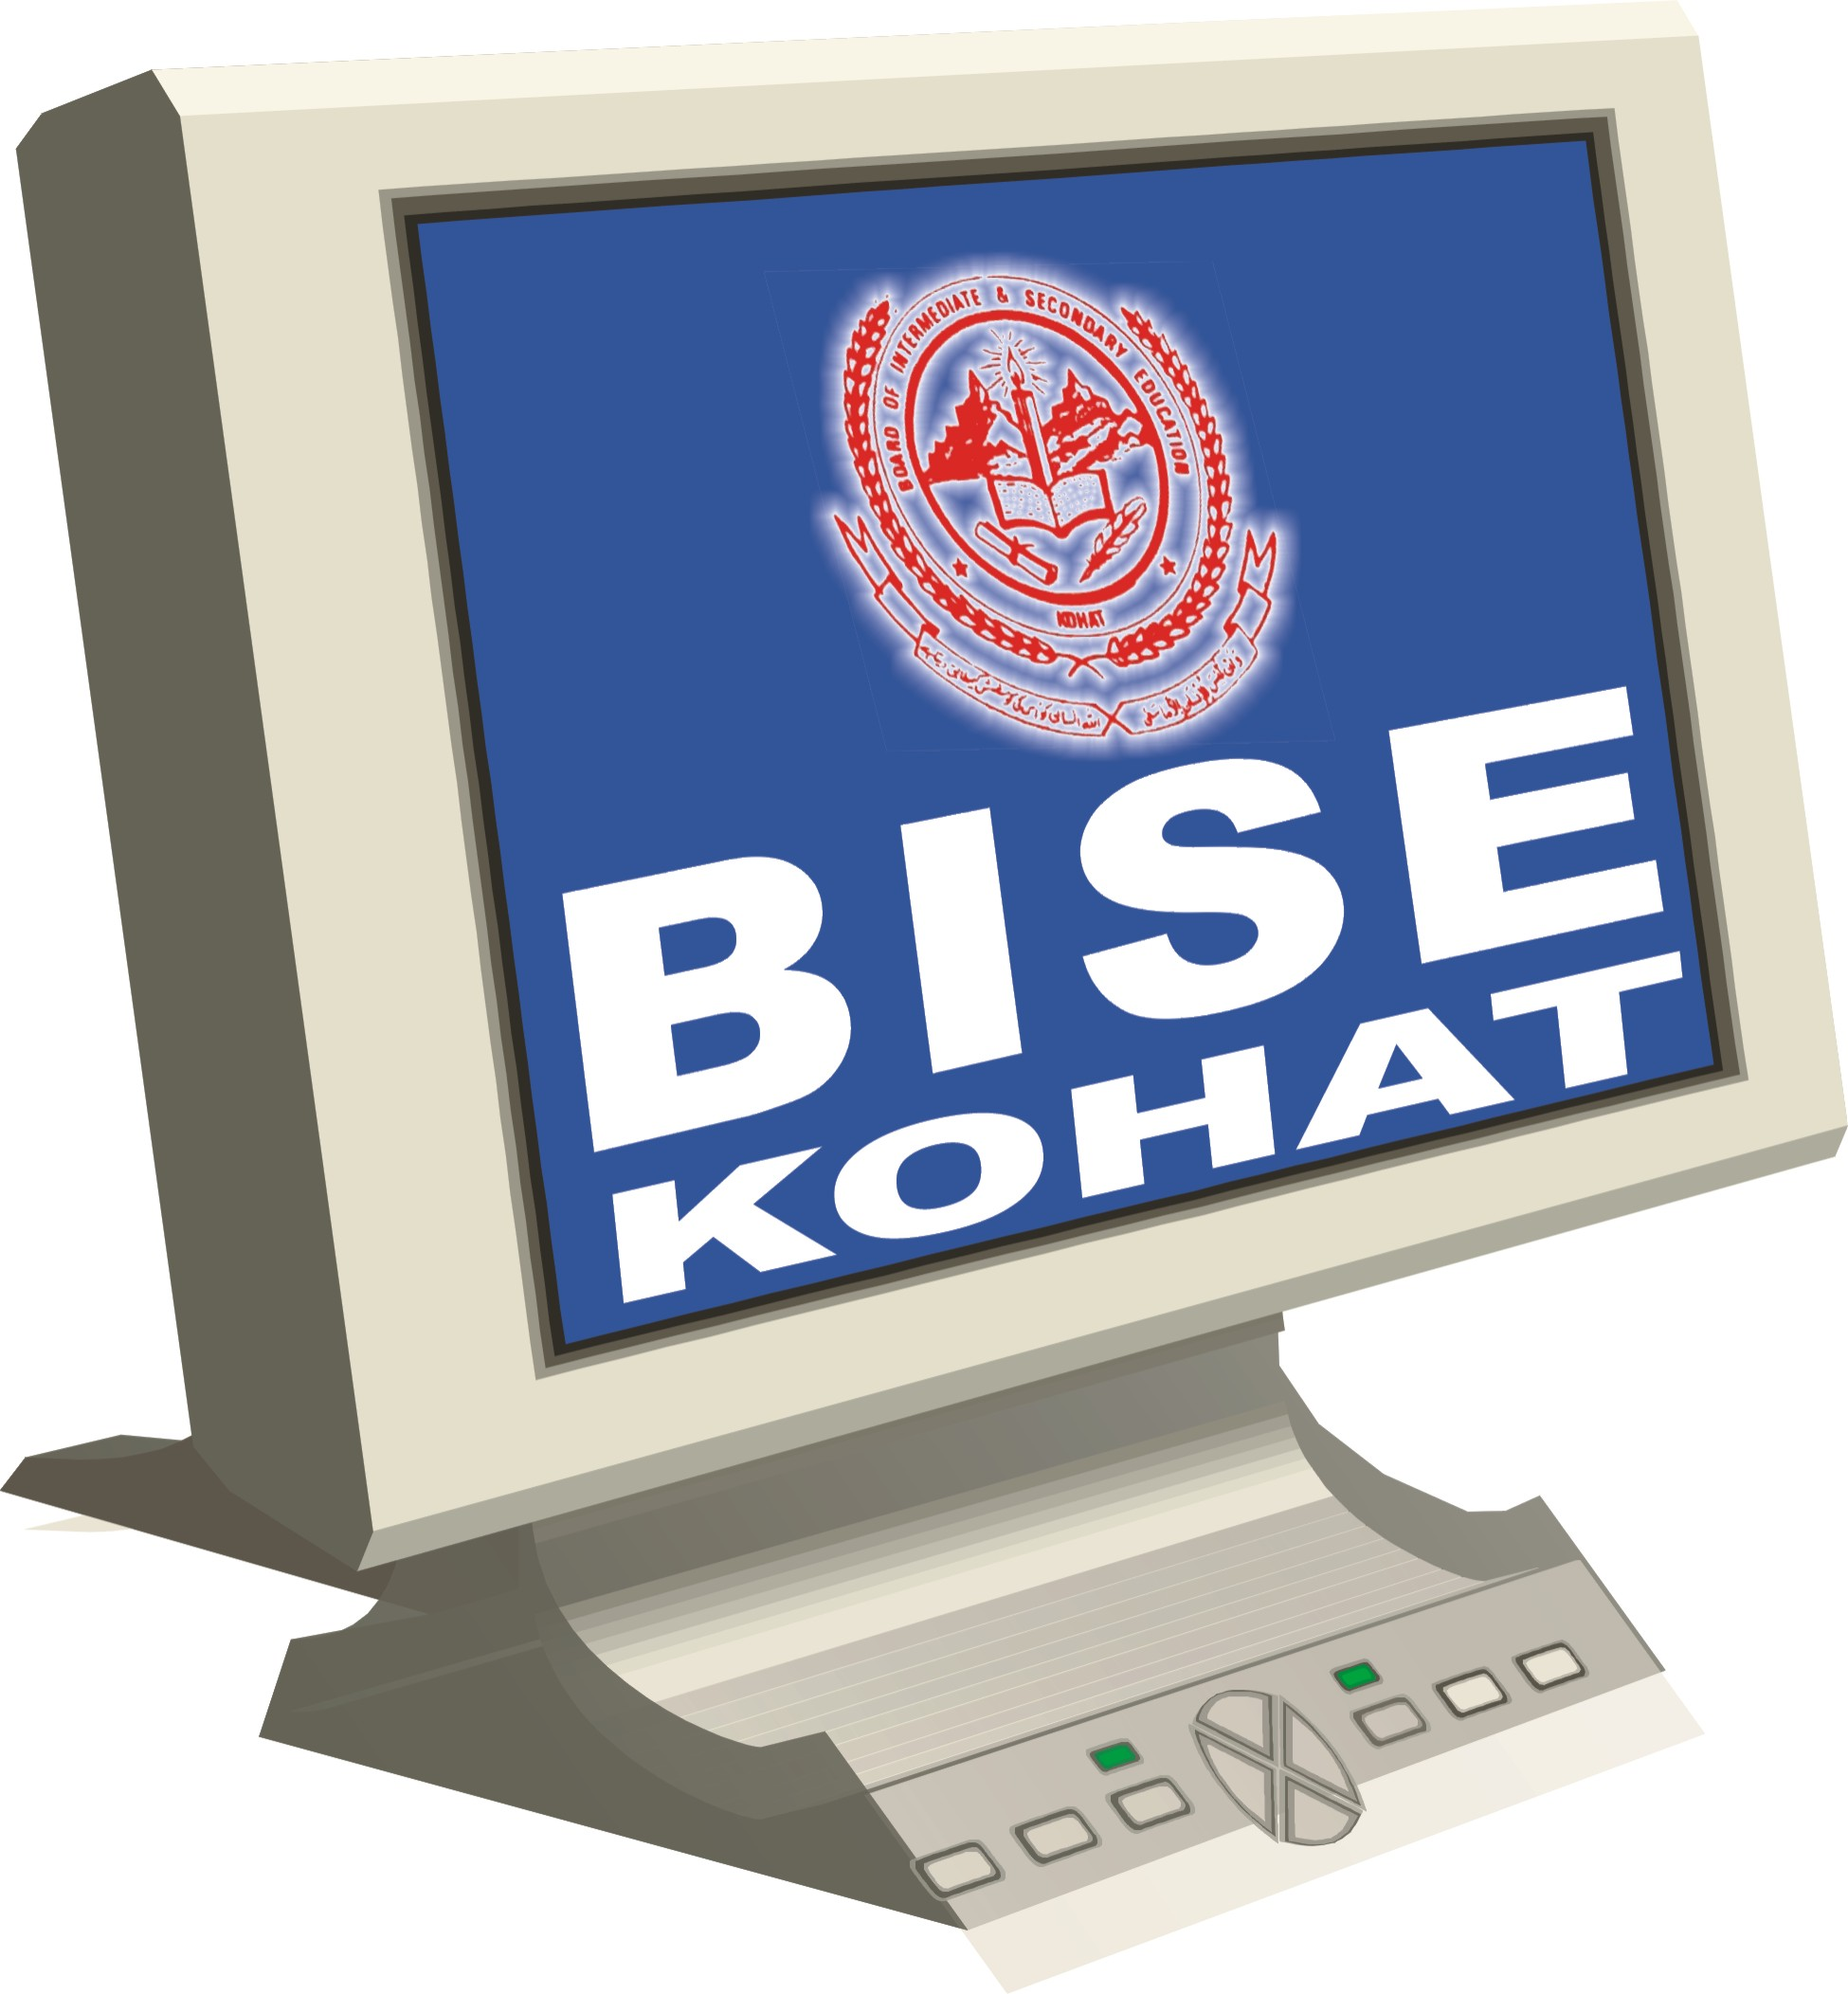 Board of Intermediate and Secondary Education (BISE) Kohat